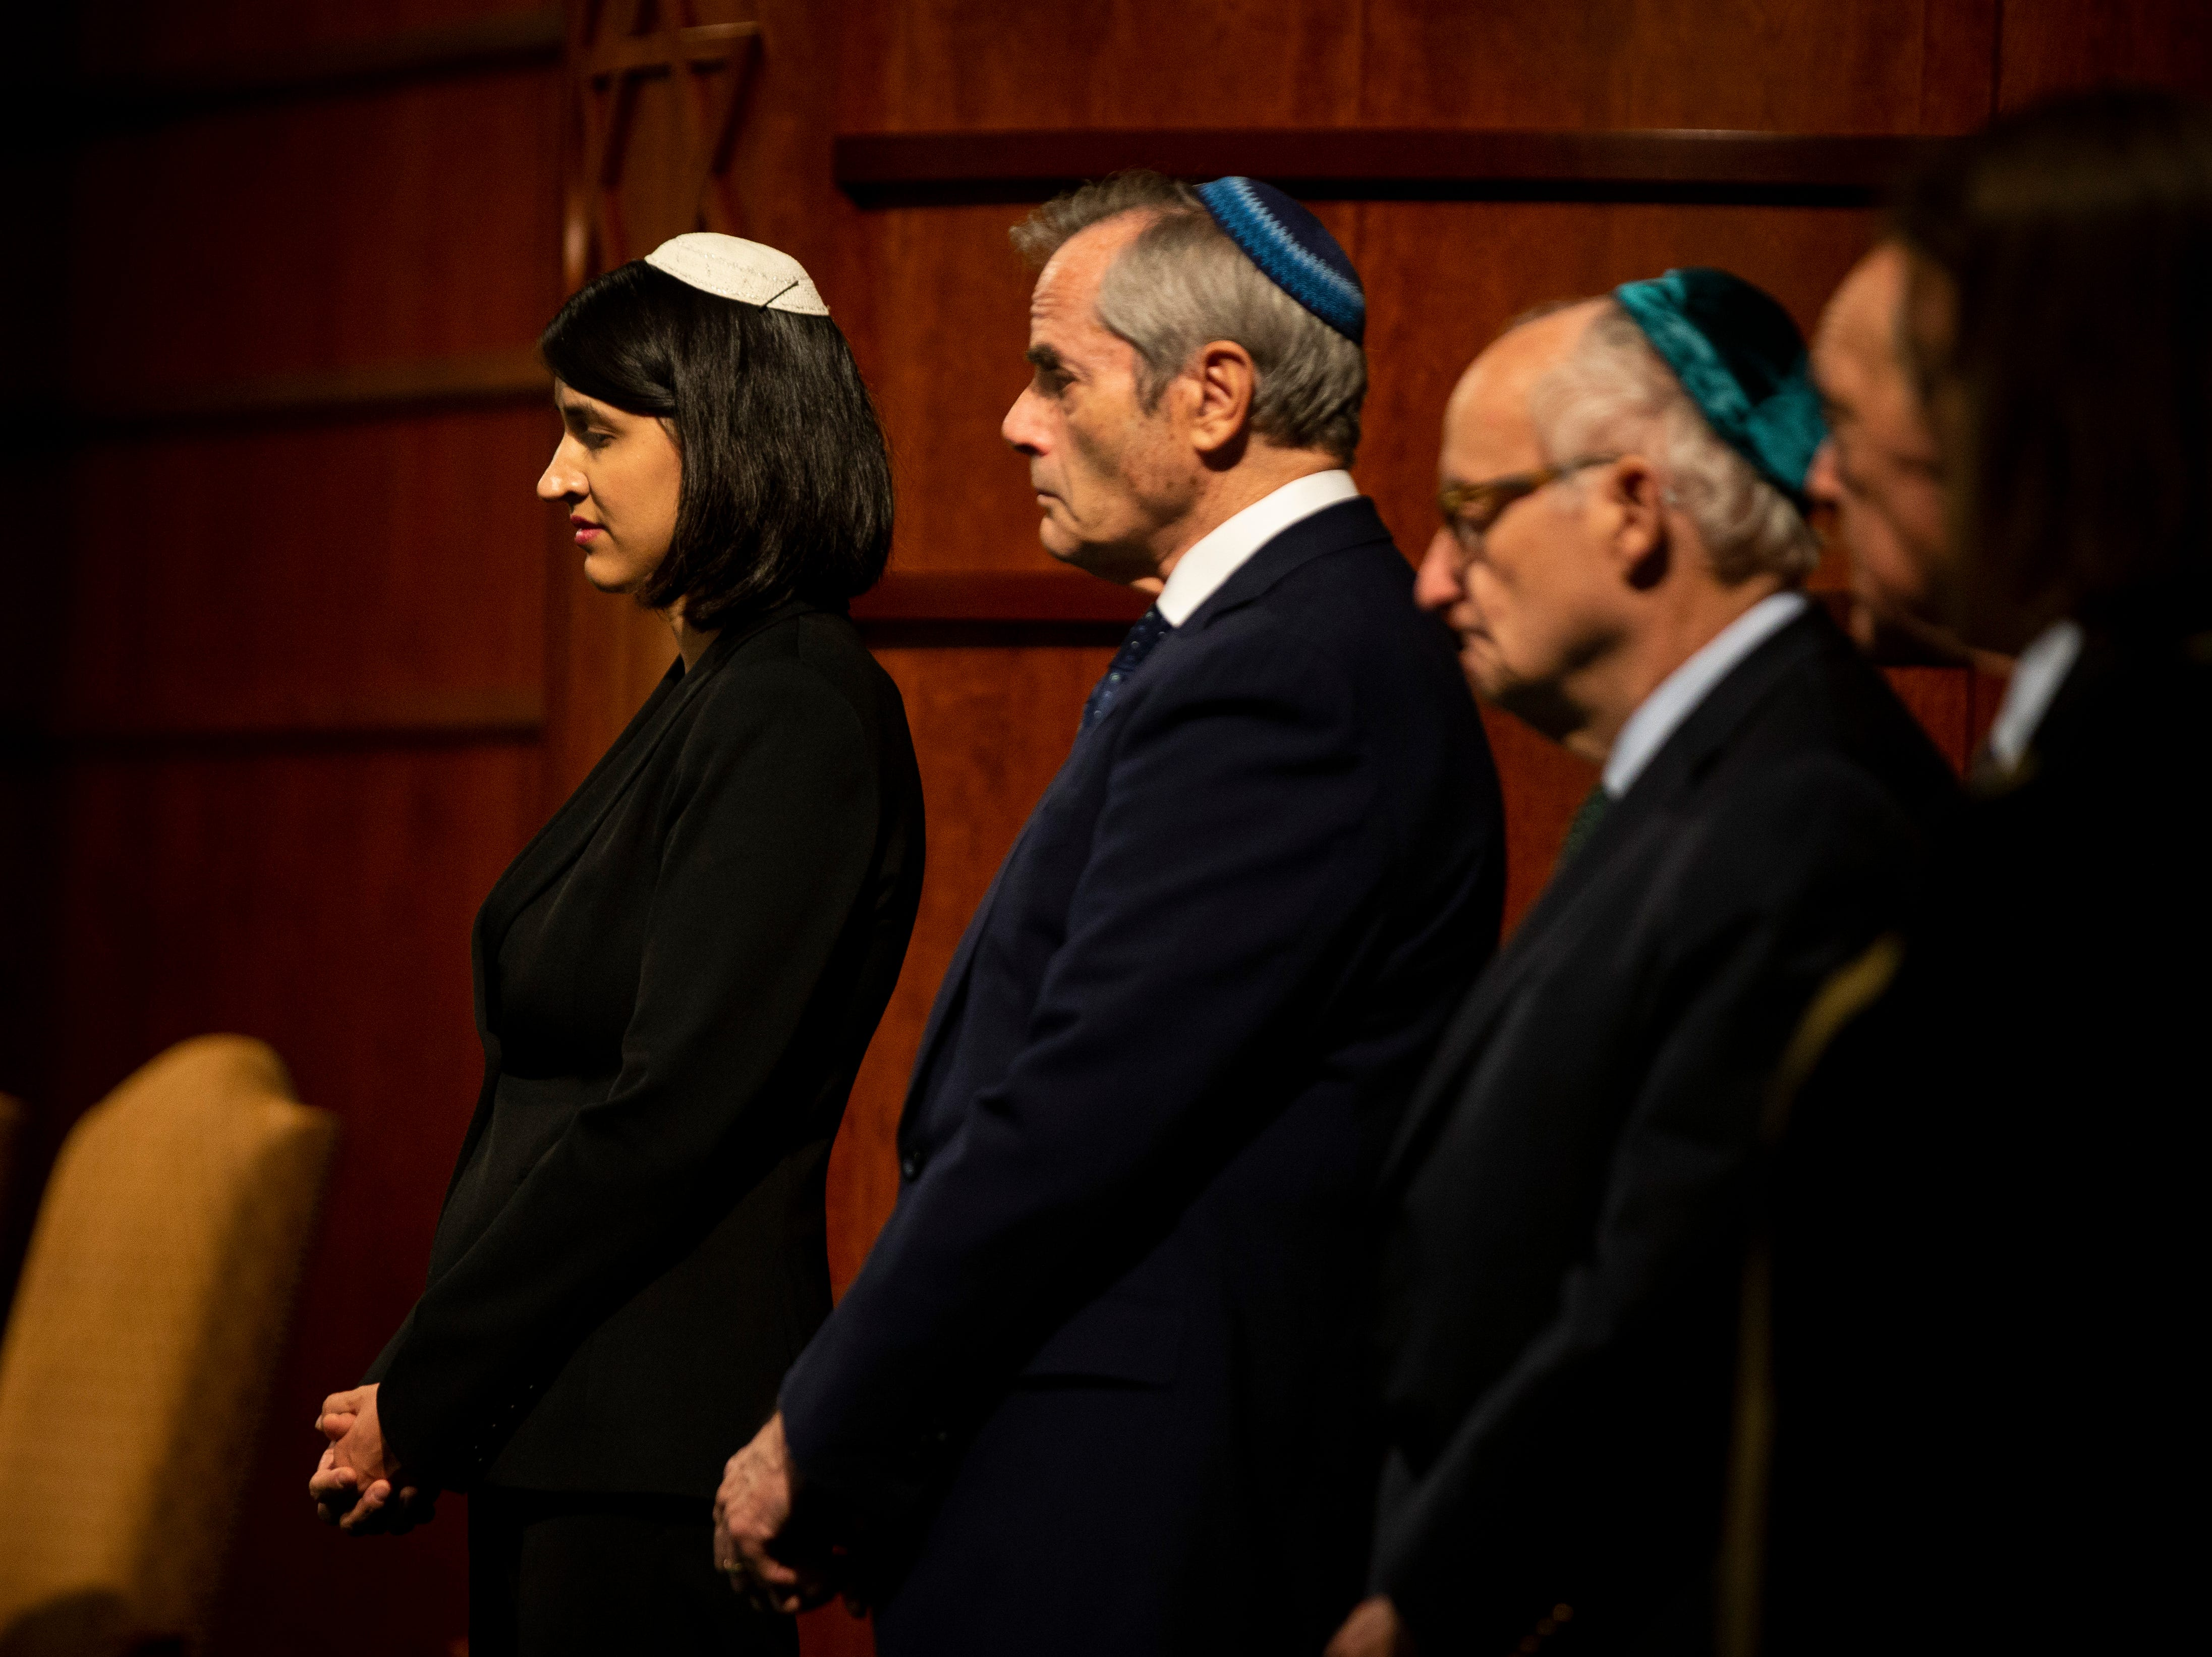 From left to right, Rabbi Nicole Luna, Rabbi Stephen Fuchs, and Rabbi James Rudin stand at the front of the room with other faith leaders during an interfaith memorial vigil on Monday, October 29, 2018, at Temple Beth-El in Fort Myers. Rabbi Rudin, who was born in Pittsburgh and still has family in Squirrel Hill, says this tragedy is personal to him.